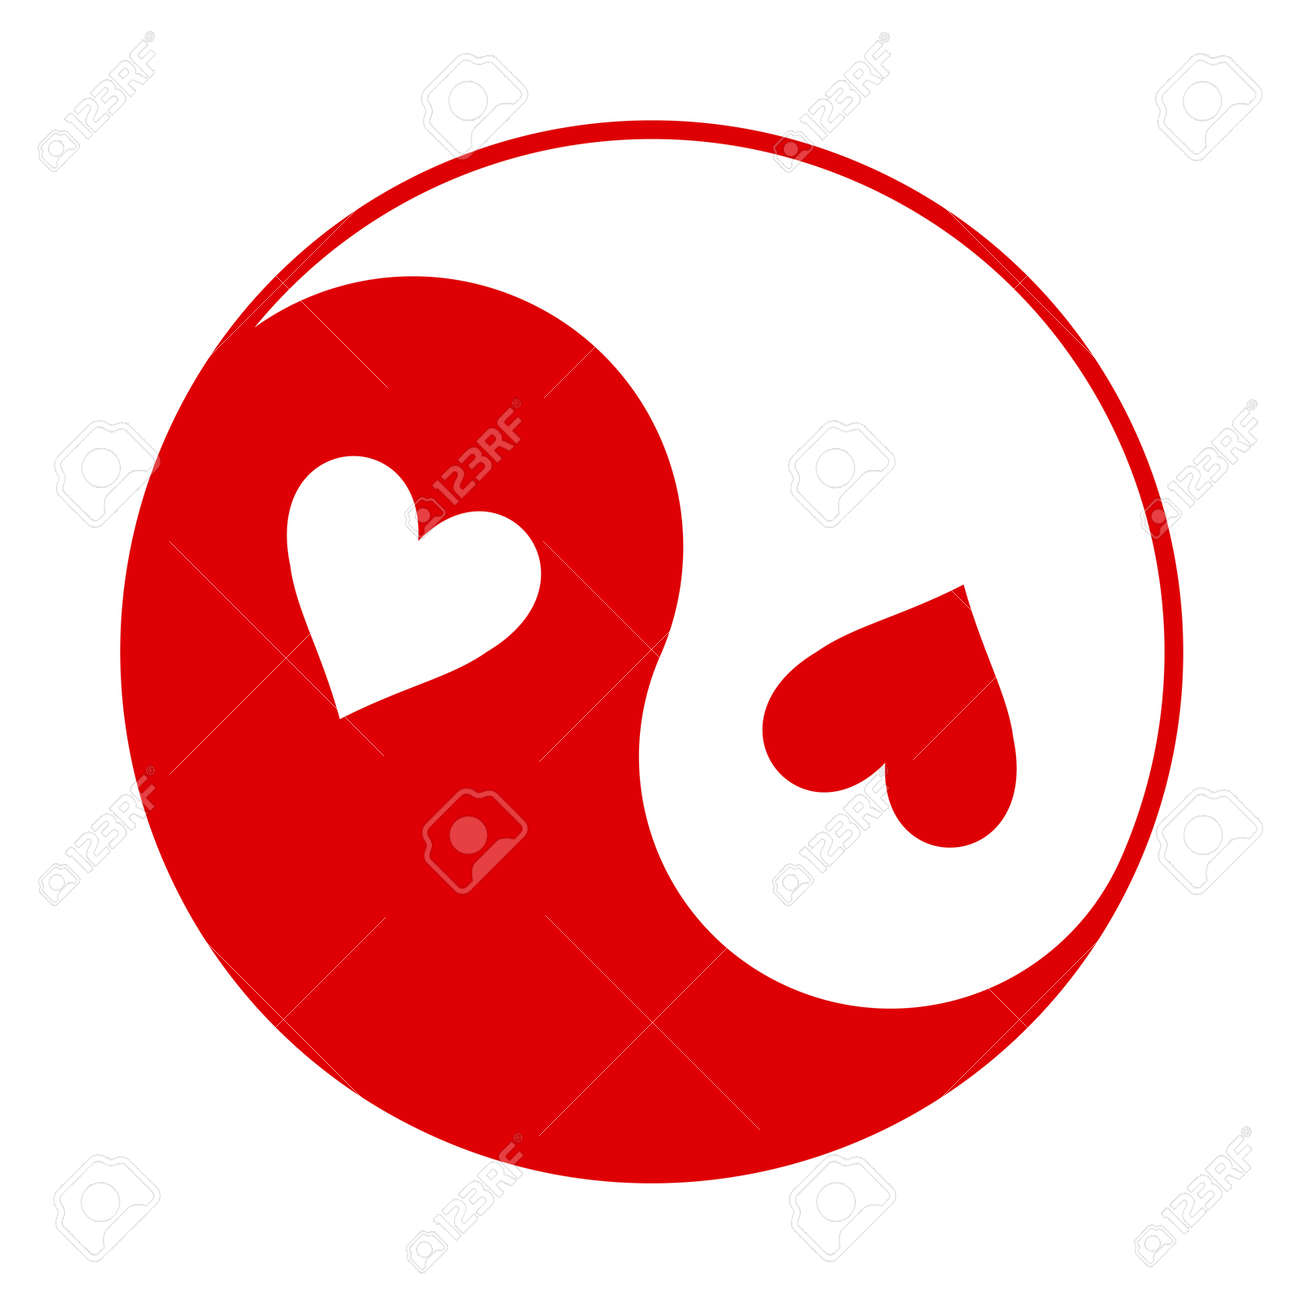 red and white yin yang symbol with hearts instead of dots royalty rh 123rf com Cool Yin Yang Yin Yang Drawings